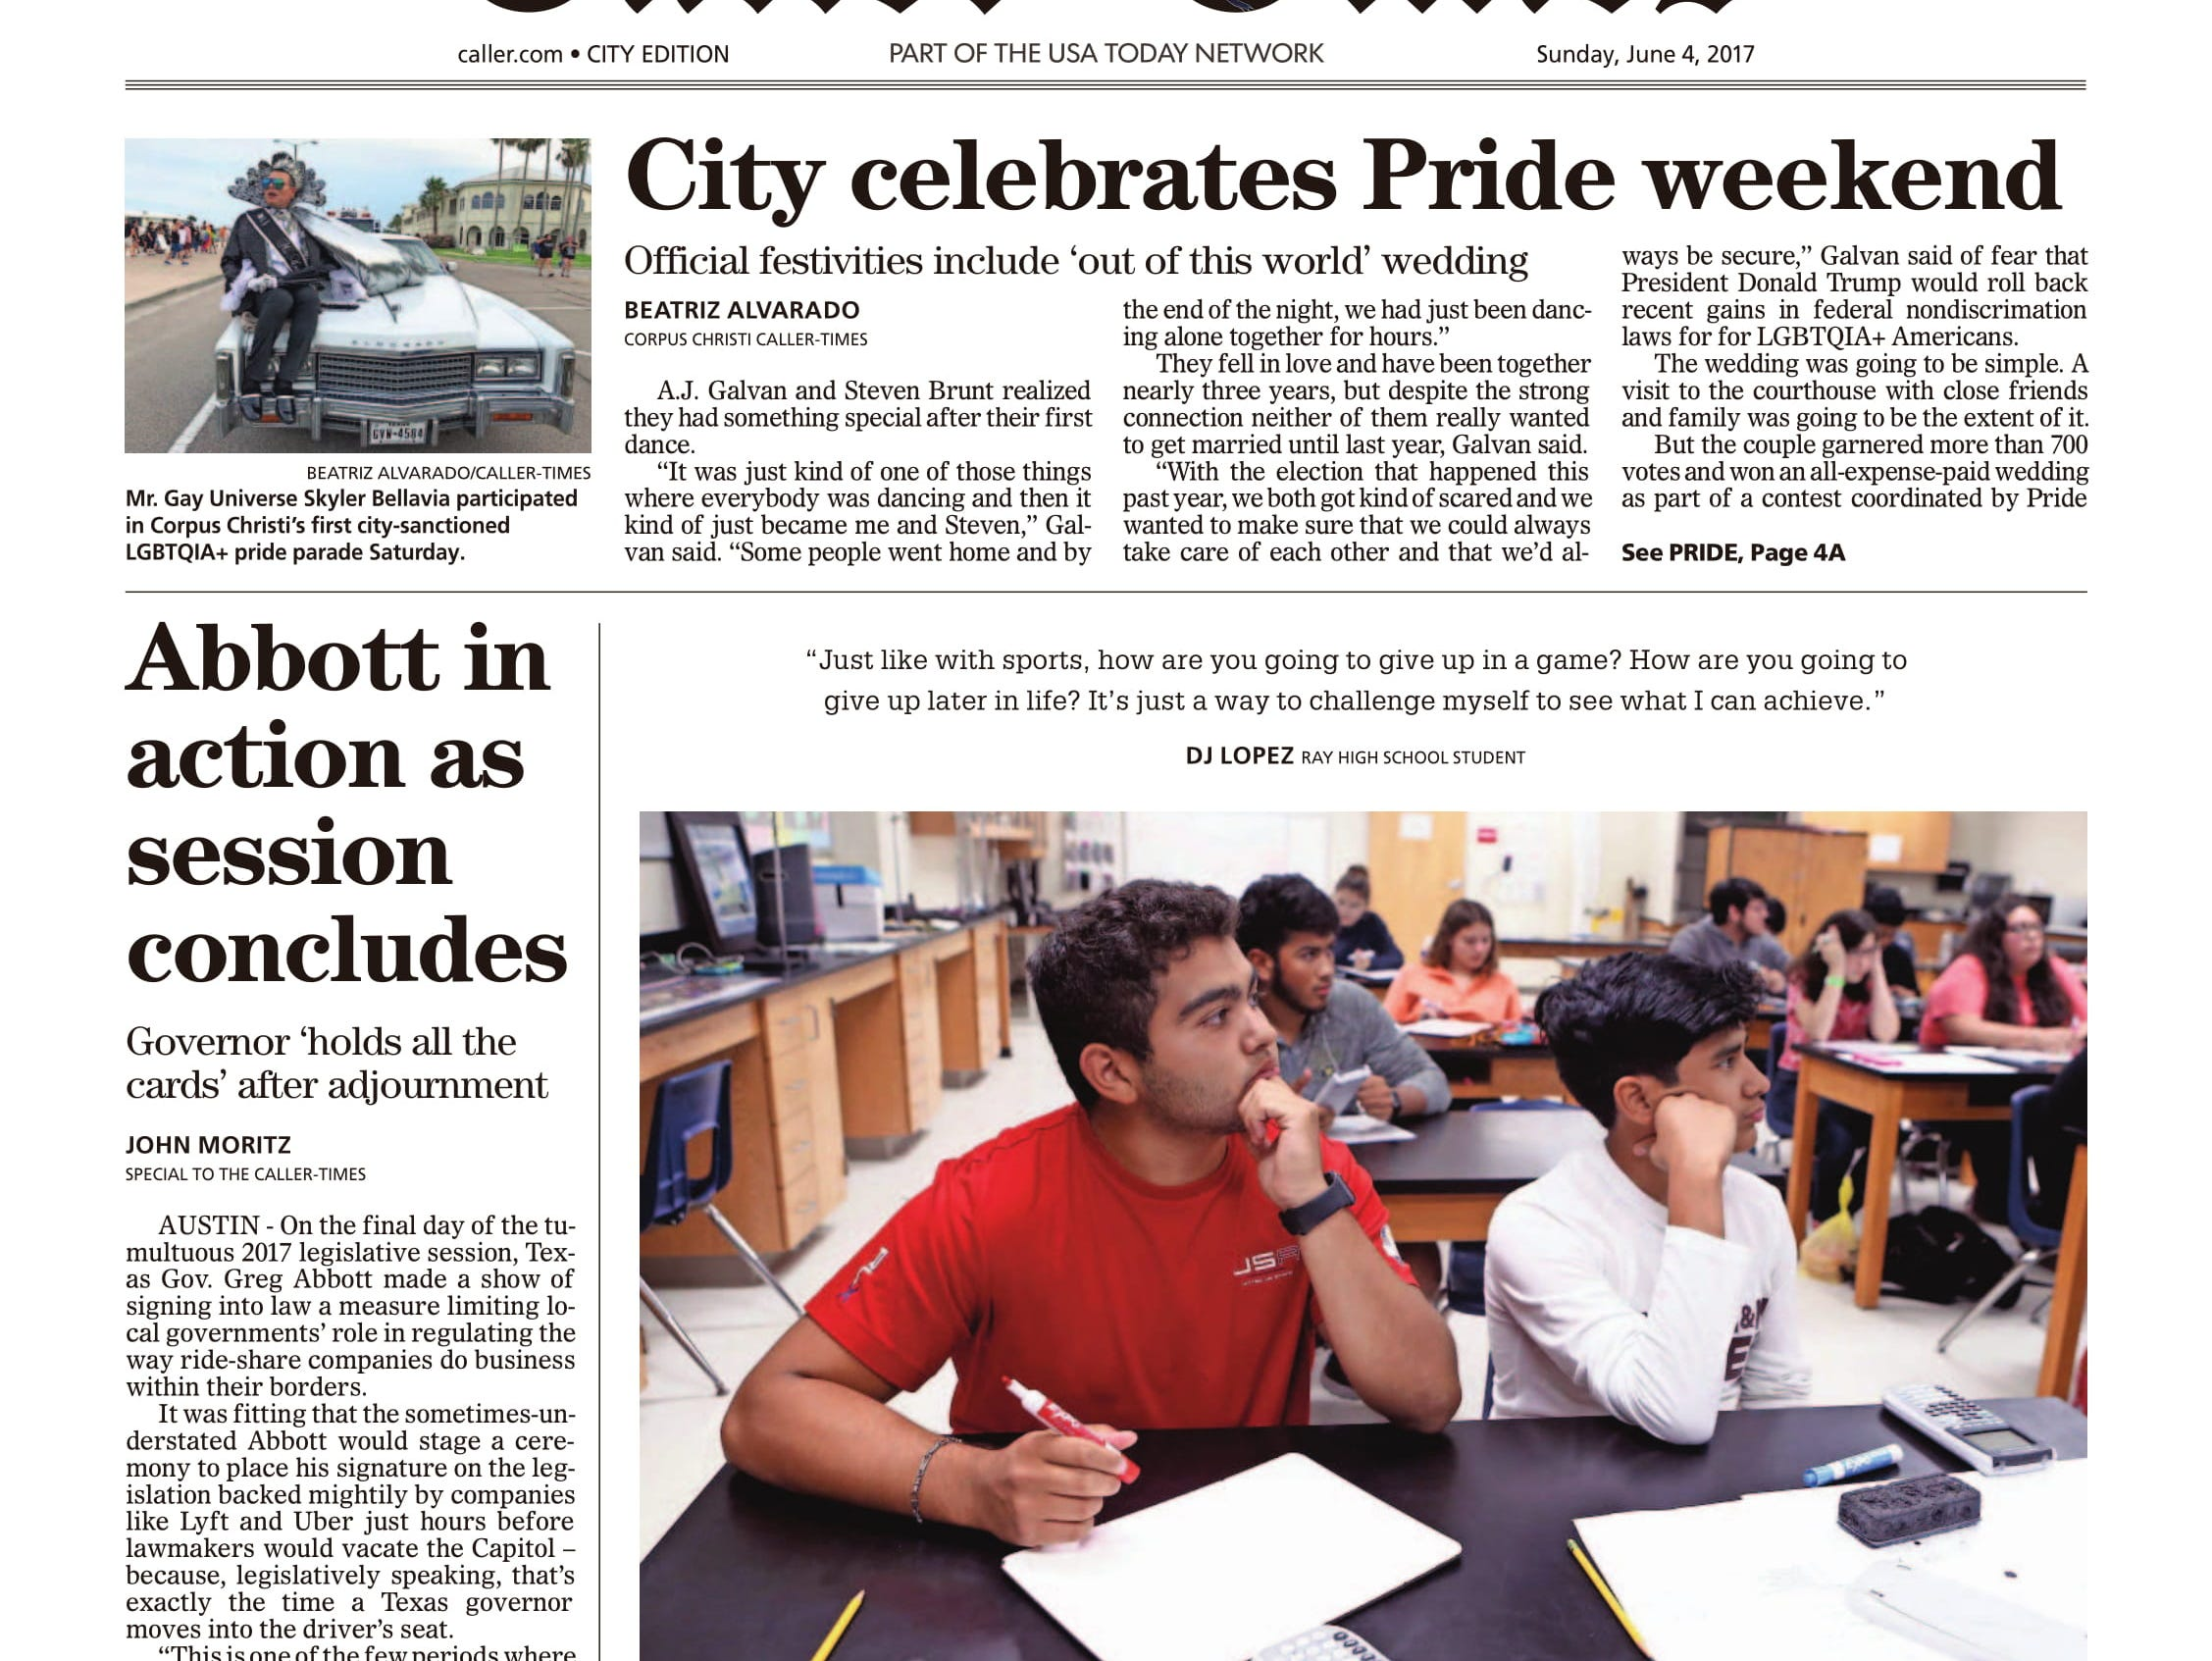 The front page of the Caller-Times on June 4, 2017 after the city's first pride parade.